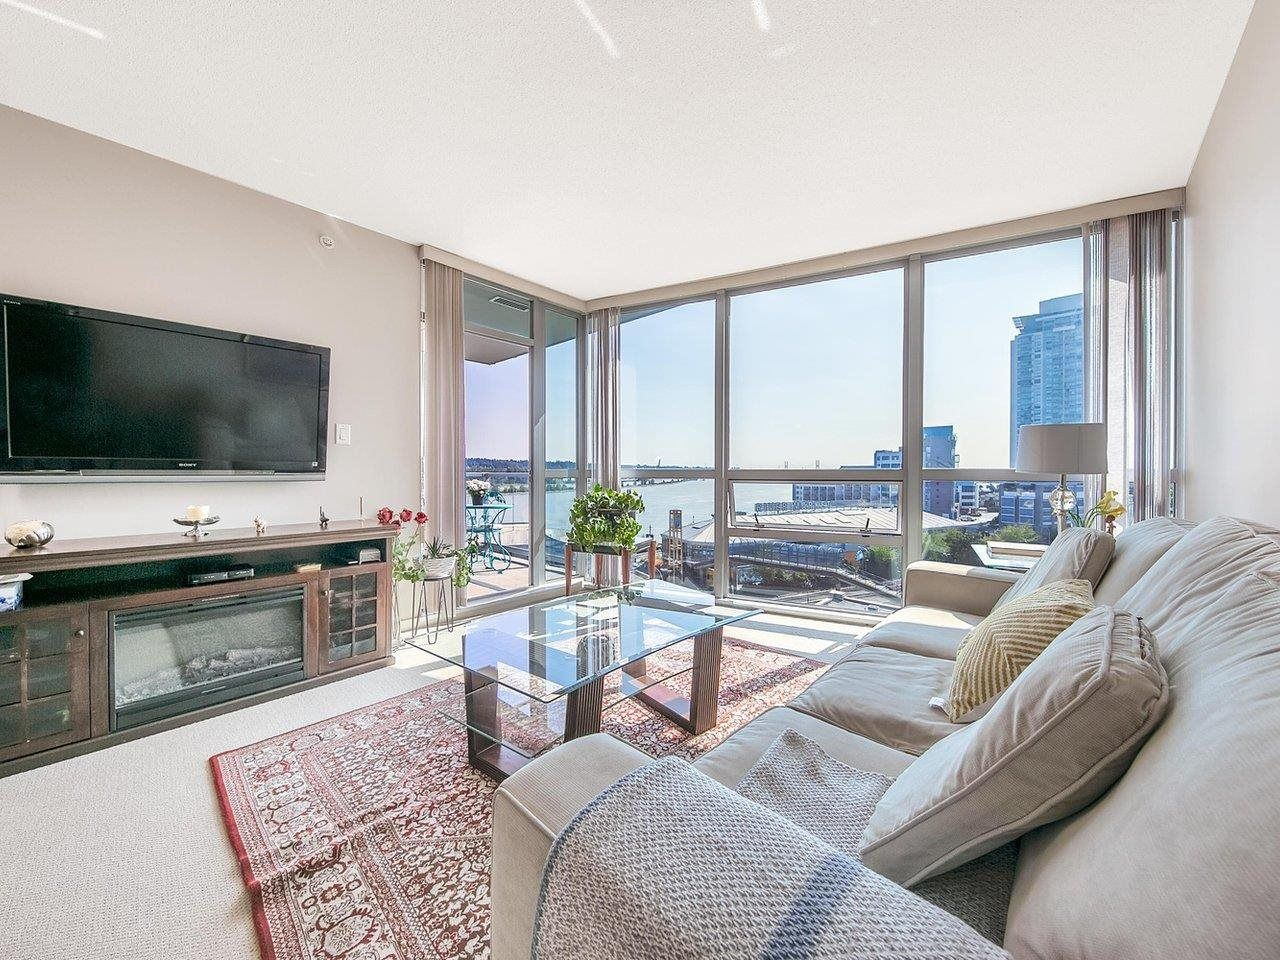 """Main Photo: 910 14 BEGBIE Street in New Westminster: Quay Condo for sale in """"INTERURBAN"""" : MLS®# R2605059"""